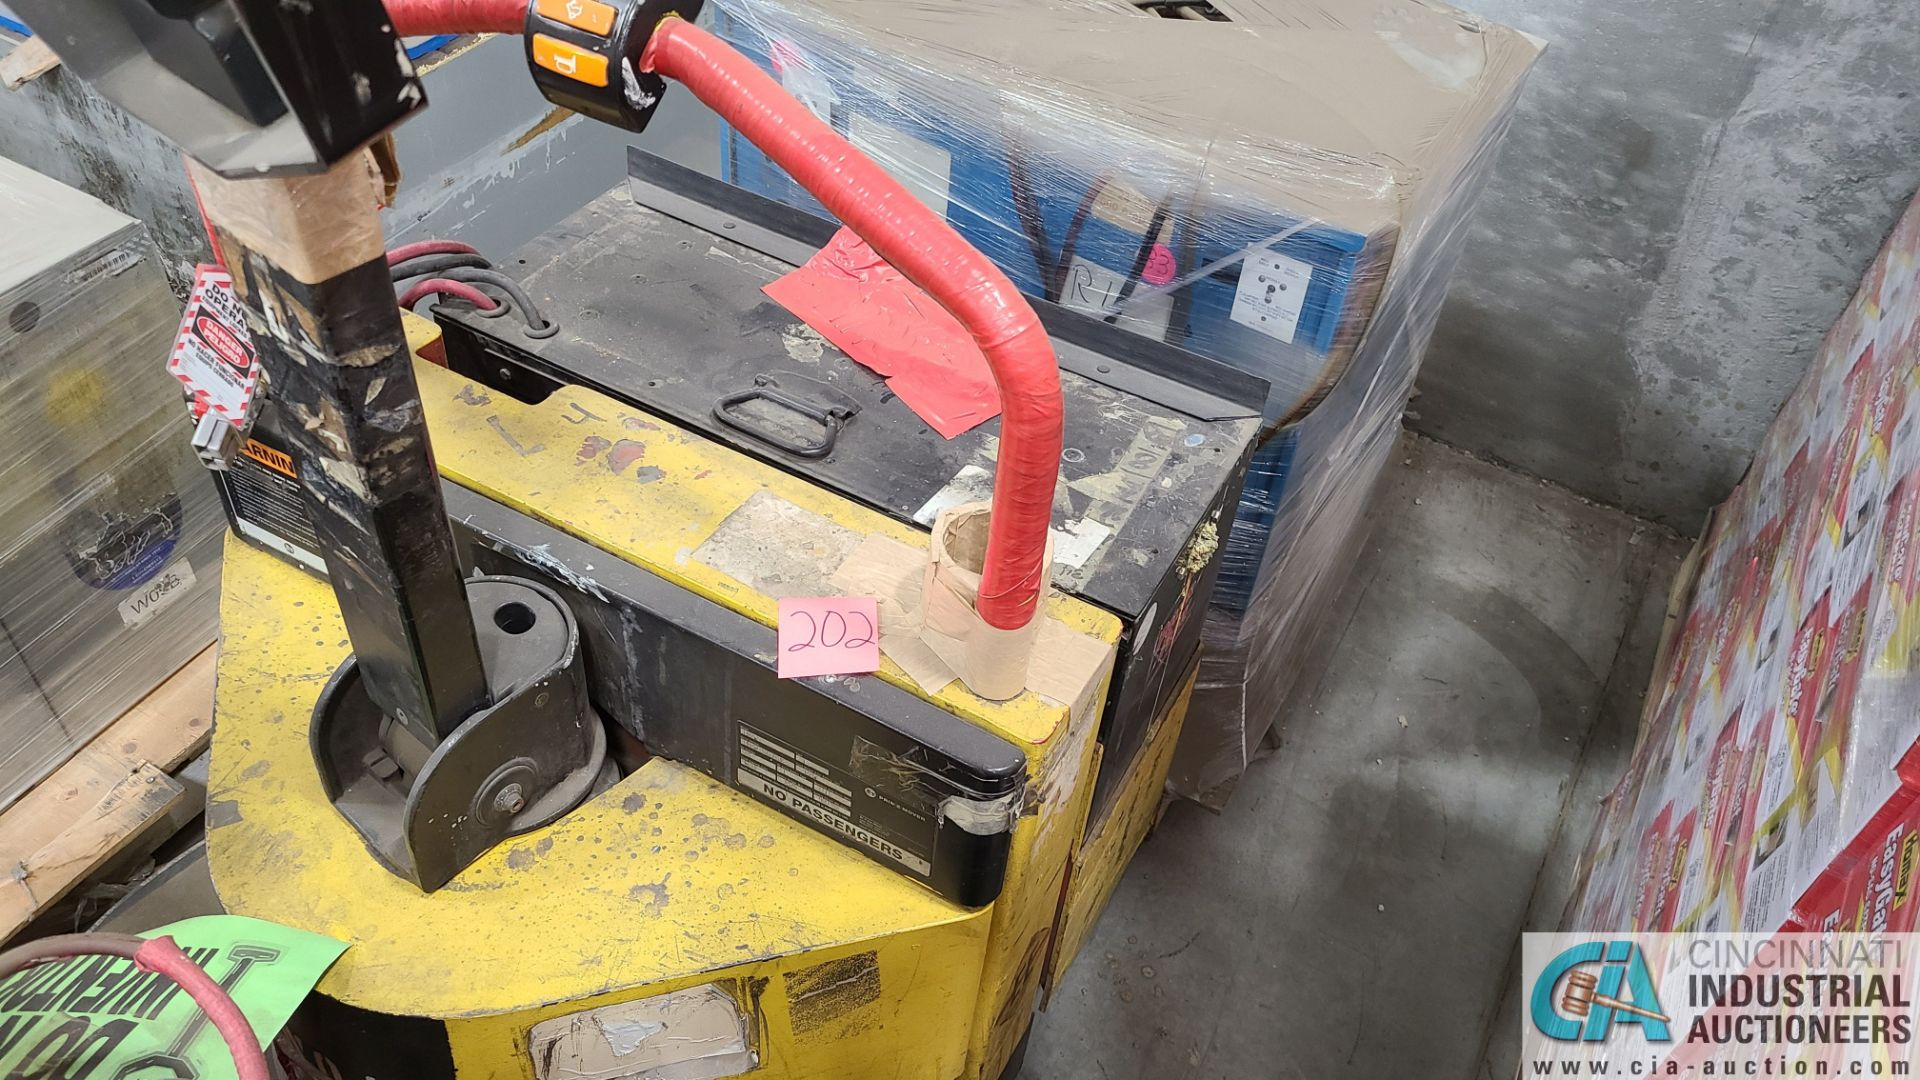 PRIME MODEL HMX65 ELECTRIC PALLET TRUCK; S/N HMX6531038002, W/ BATTERY, 642 HOURS (2570 ORCHARD - Image 2 of 4